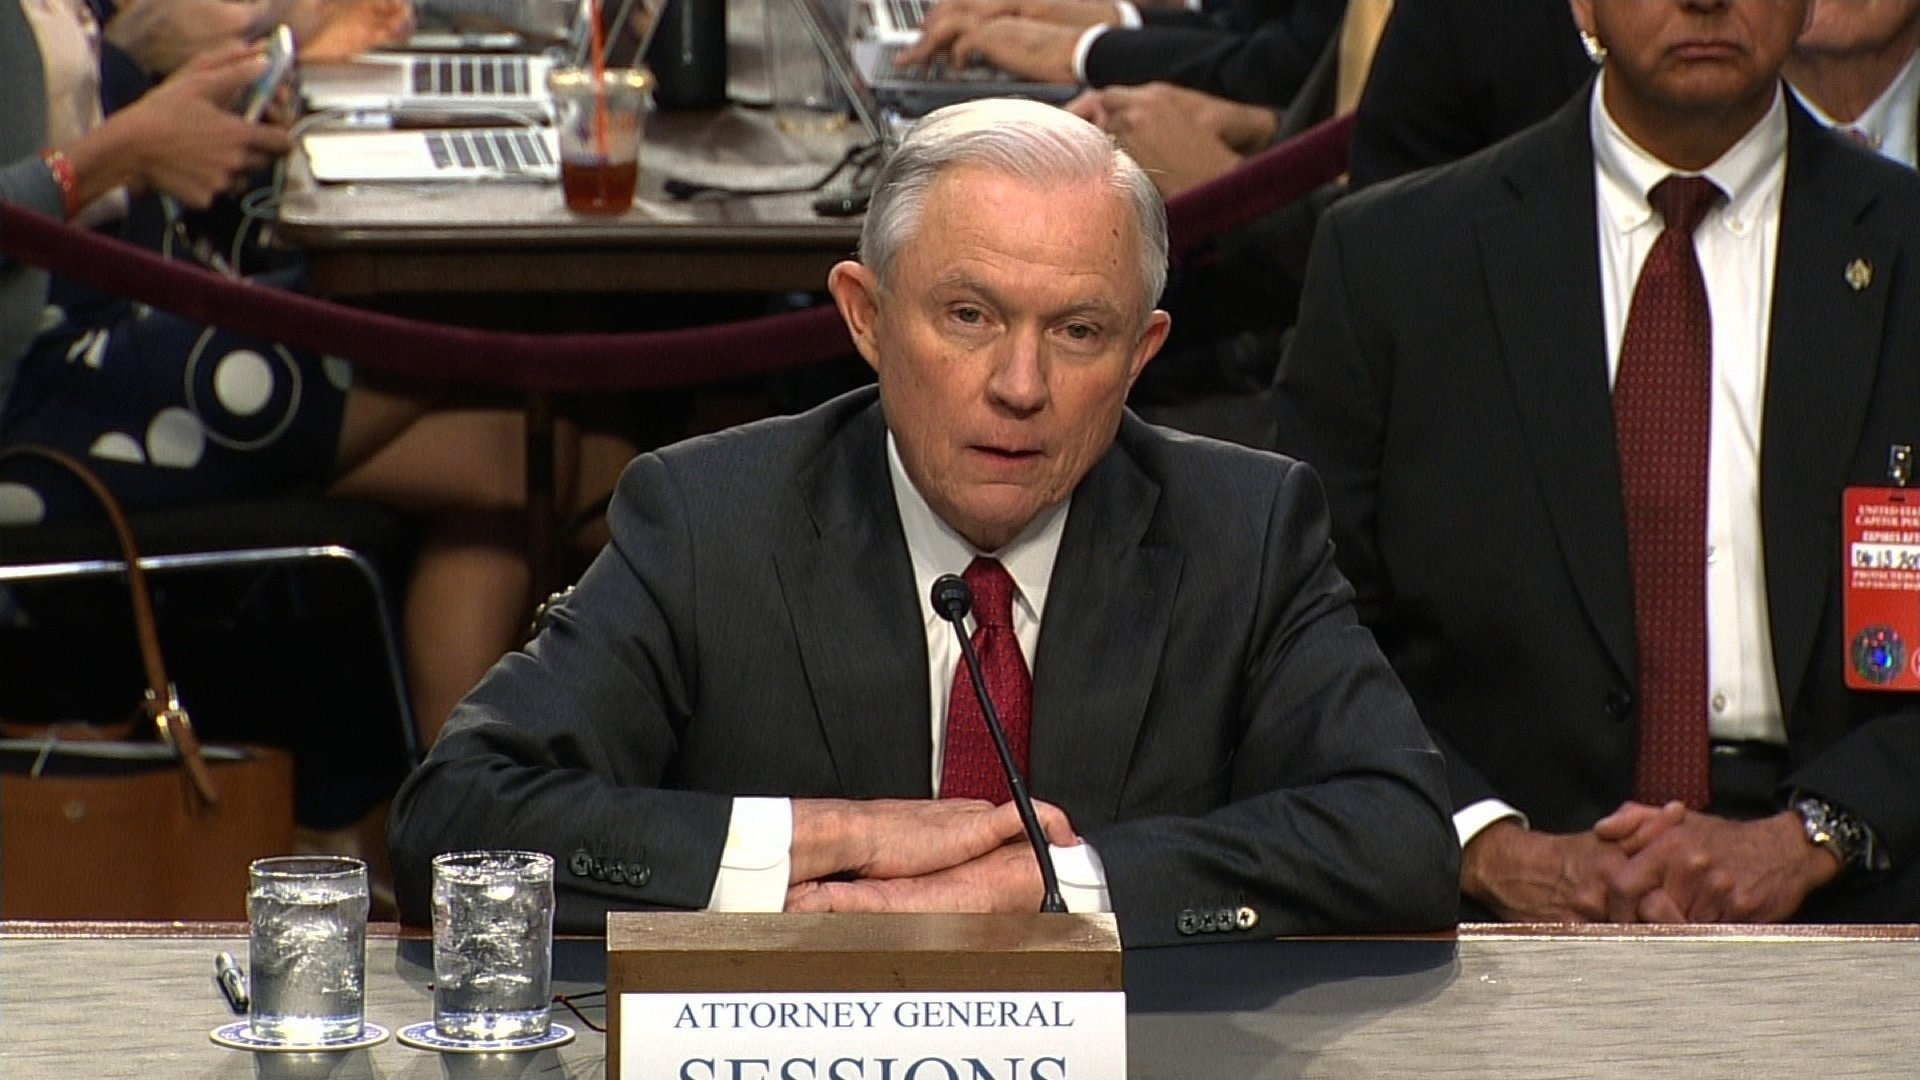 US Attorney General Sessions To Face Questions On Russia, Comey